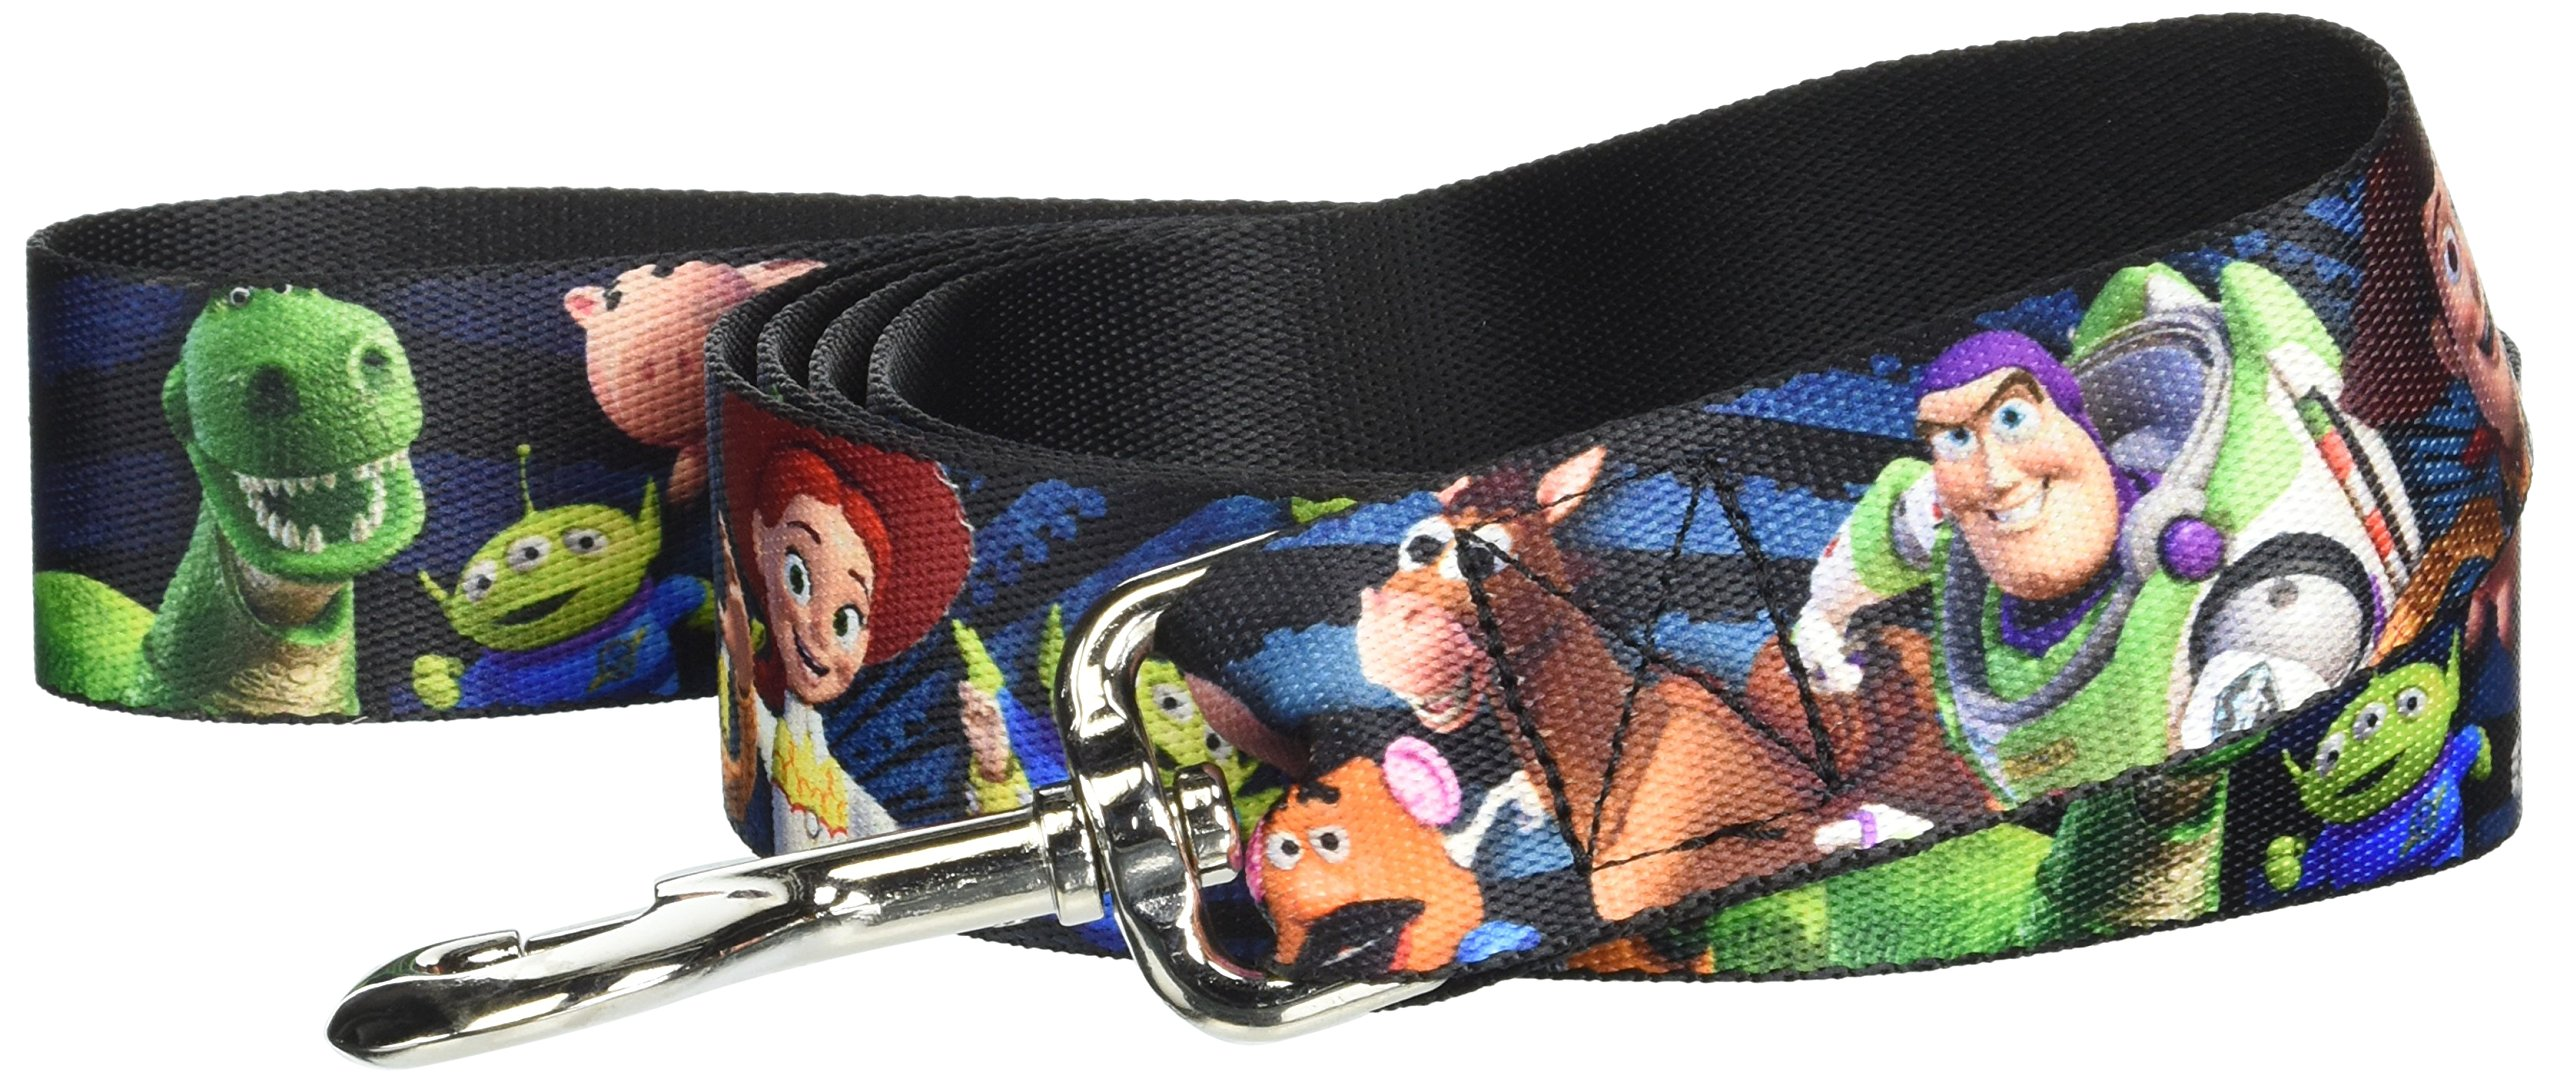 Buckle Down Pet Leash - Toy Story Characters Running Denim Rays - 6 Feet Long - 1.5'' Wide